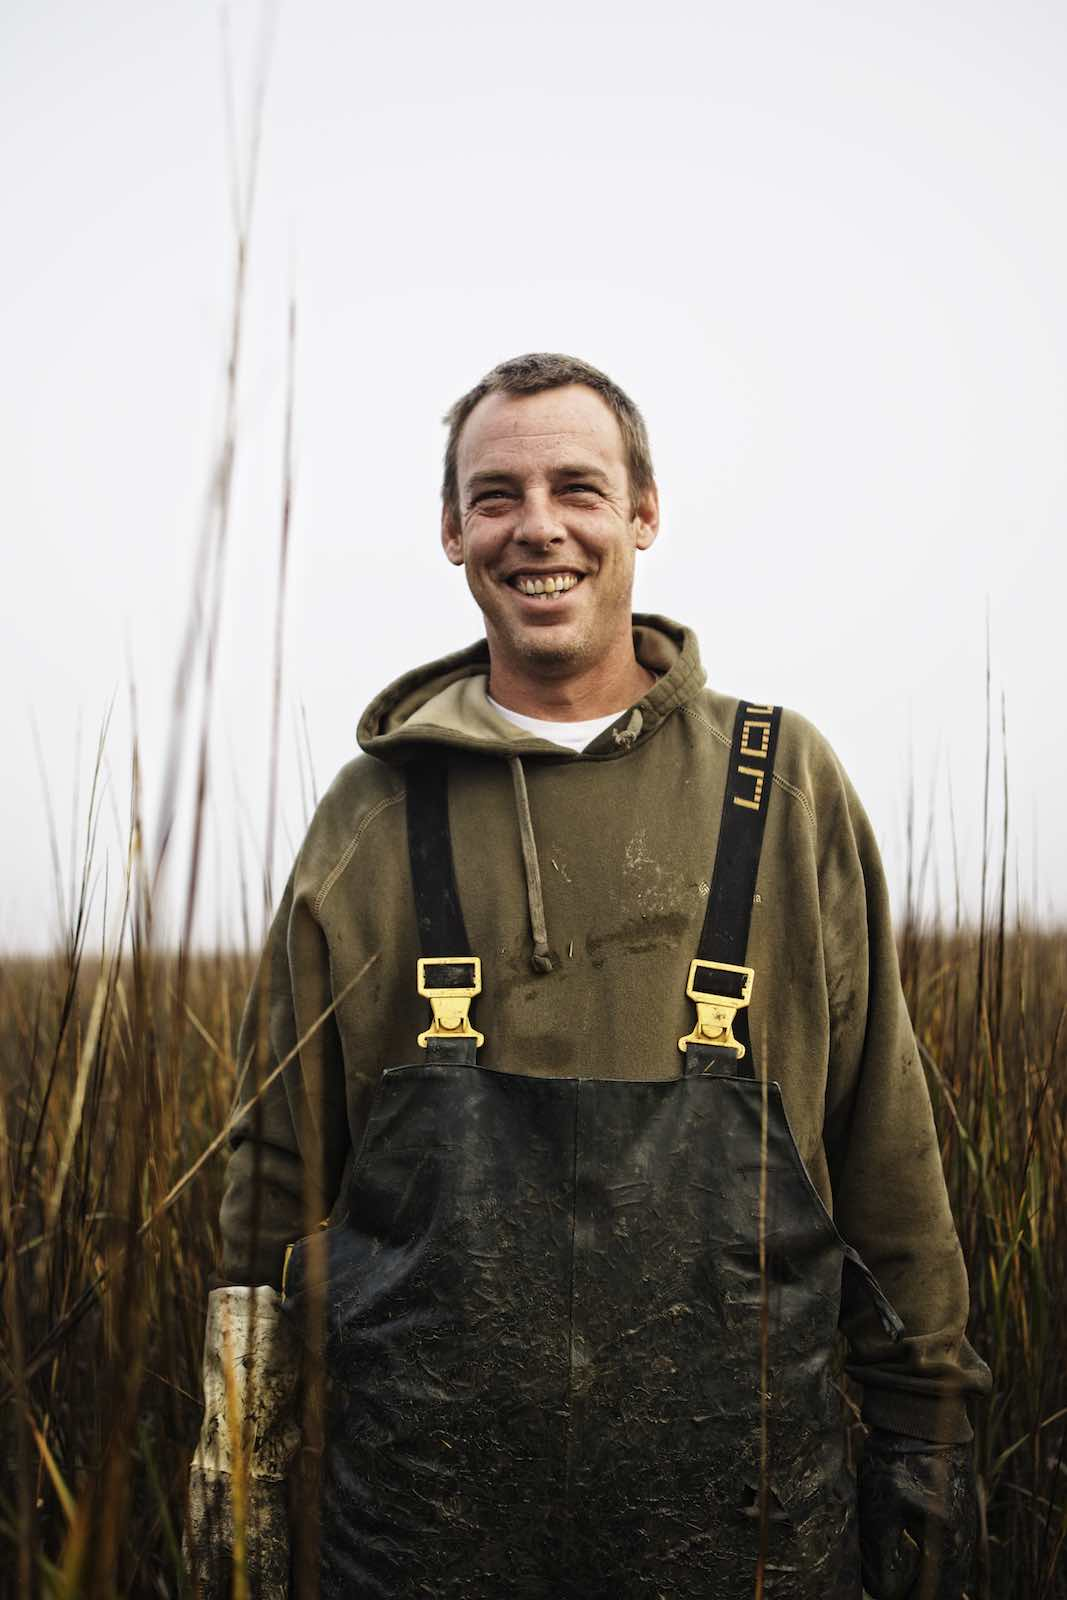 Fisherman standing in marsh grasses and smiling.